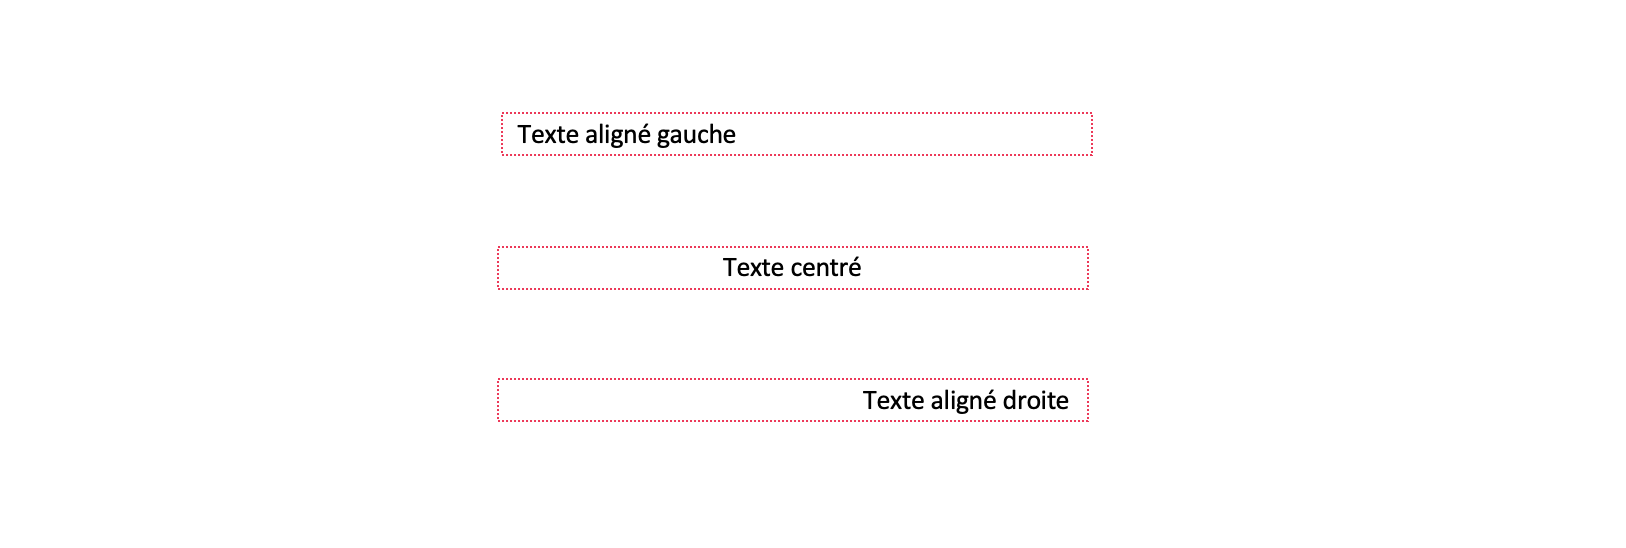 parame_tre-aimation-texte3.png